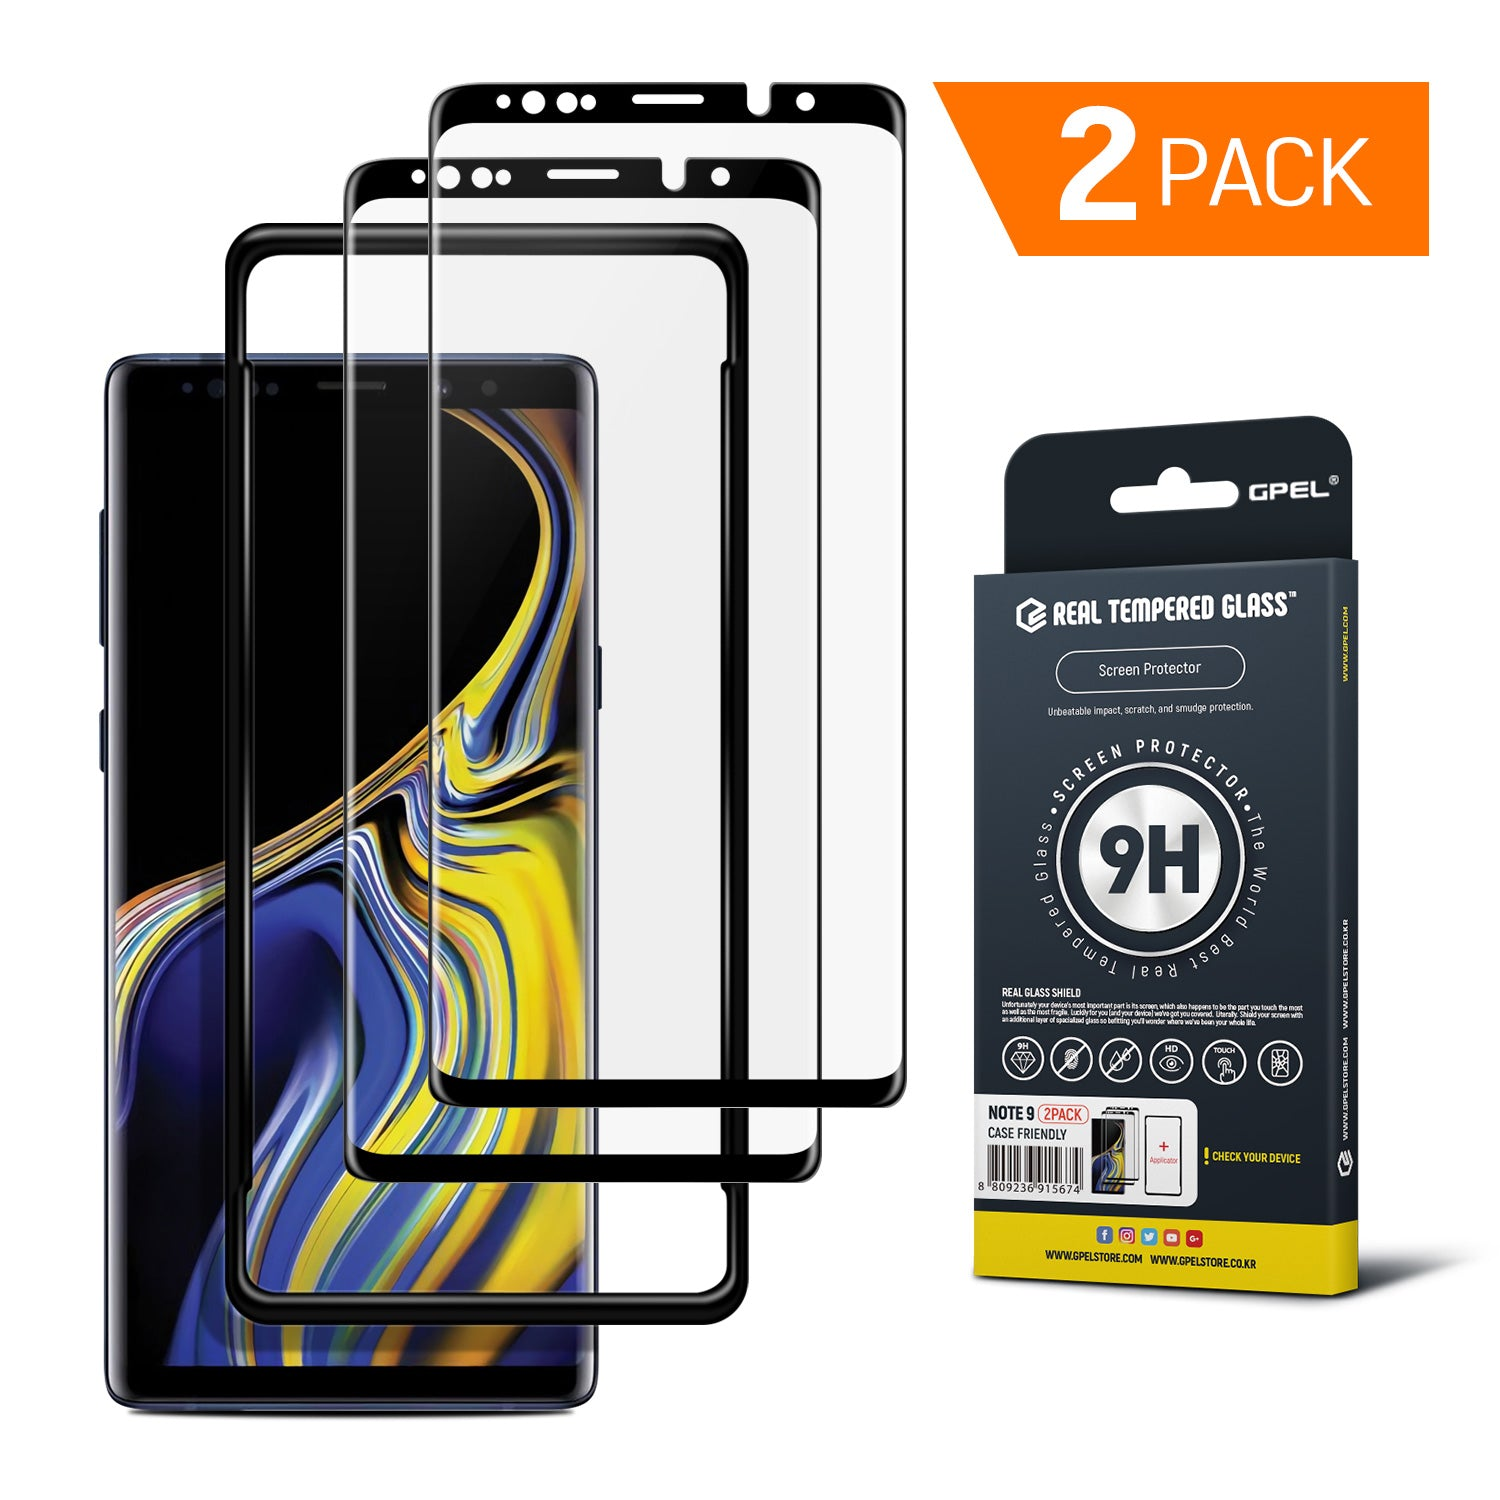 reputable site c4182 28ae0 Galaxy Note 9 - Full Coverage Tempered Glass Screen Protector (2-PACK)